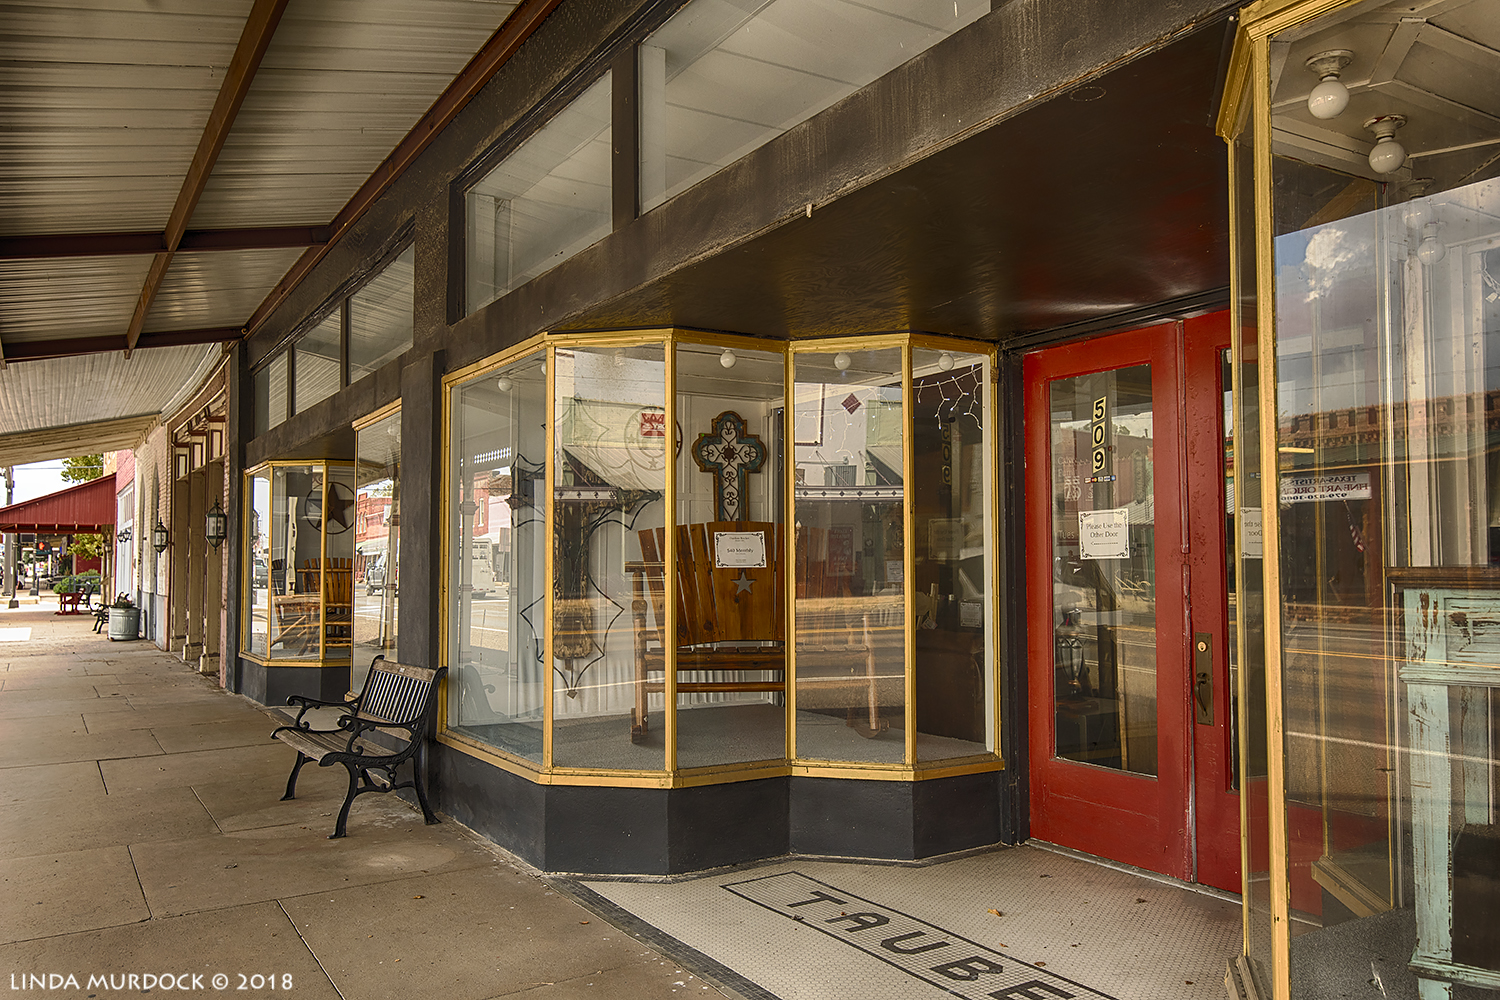 What used to be a fine downtown store in Calvert, Texas  Nikon D810 with Tamron 15-30 f/2.8 ~ ISO 400 f/6.3 at 27mm HDR; hand-held